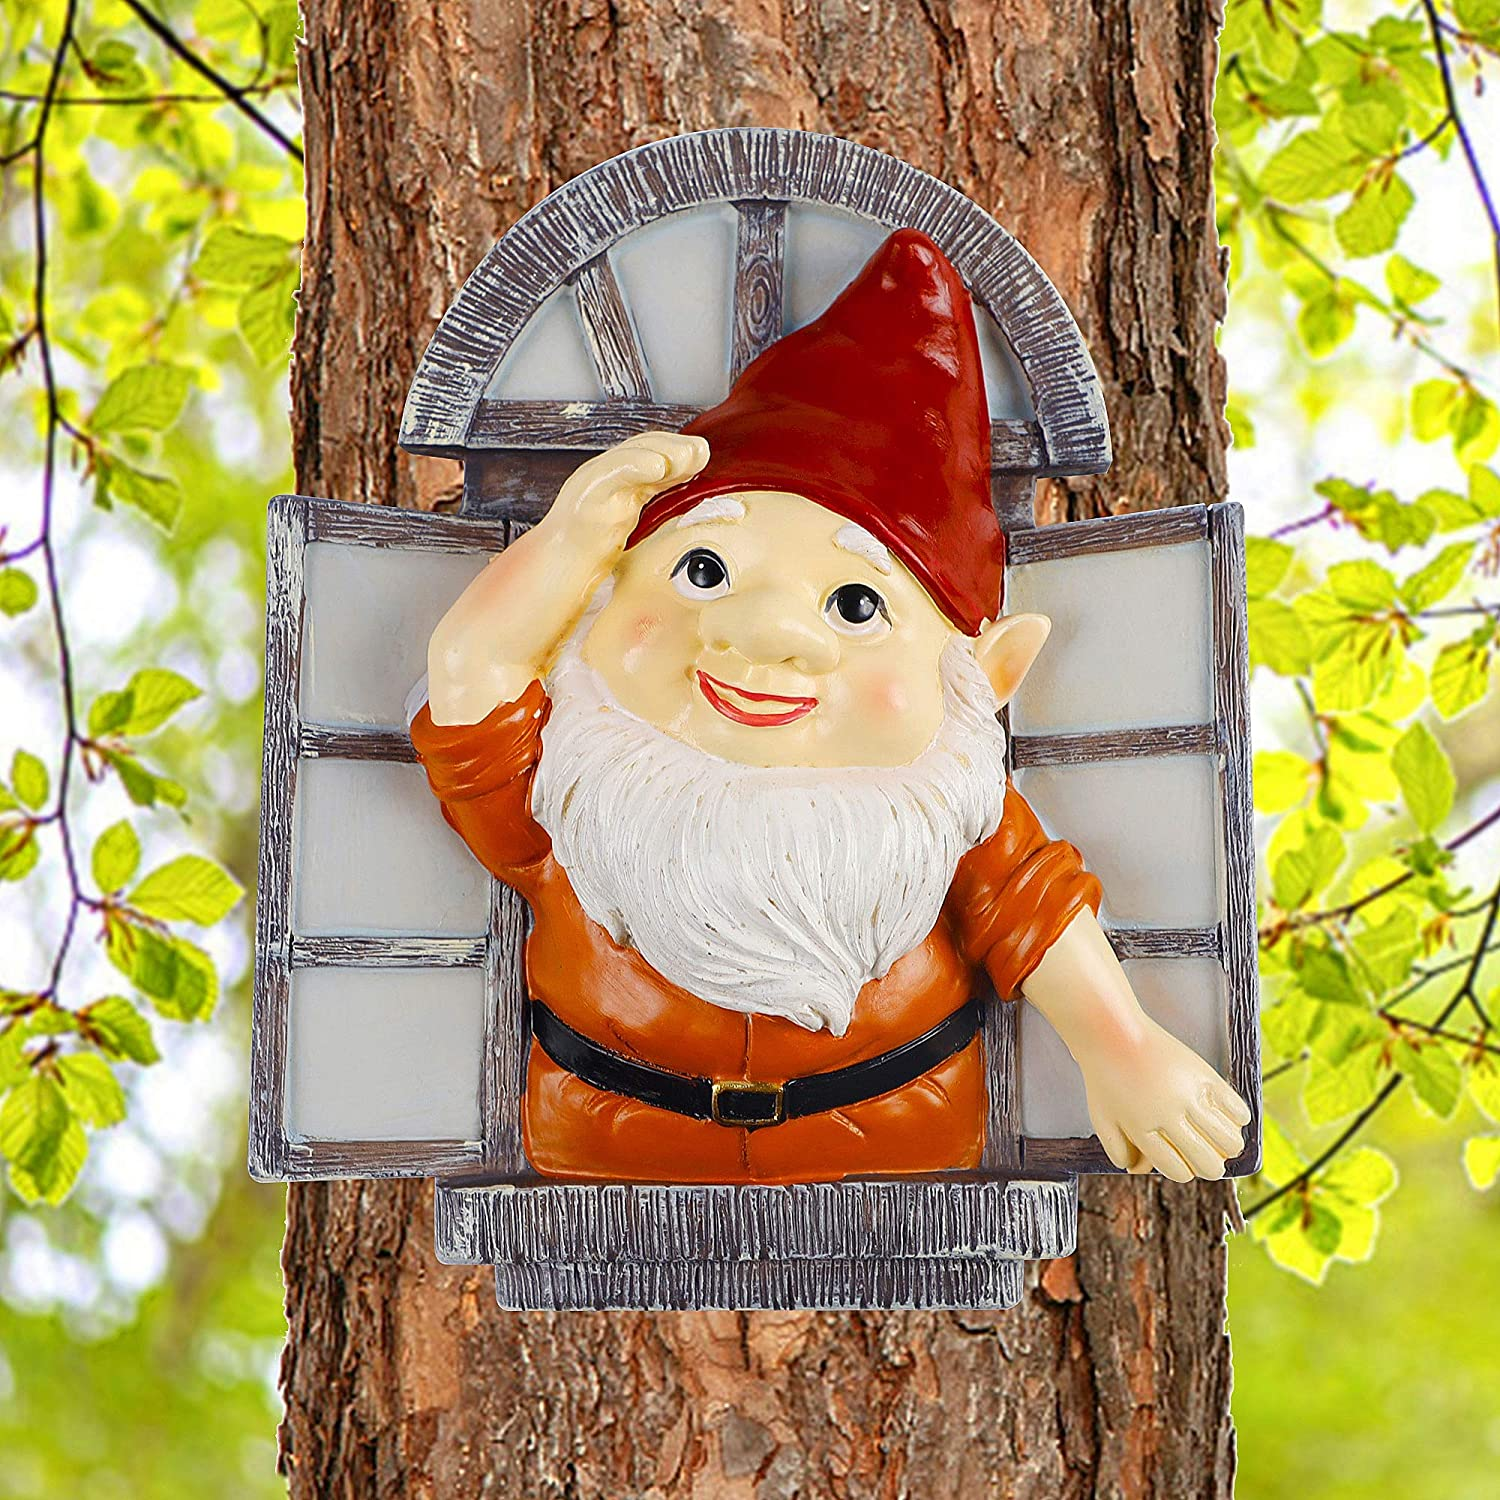 Juegoal Gnome Tree Hugger, Miniature Christmas Fairy Elf Open The Window Garden Peeker Yard Art for Tree, Outdoor Whimsical Tree Sculpture Christmas Garden Decoration